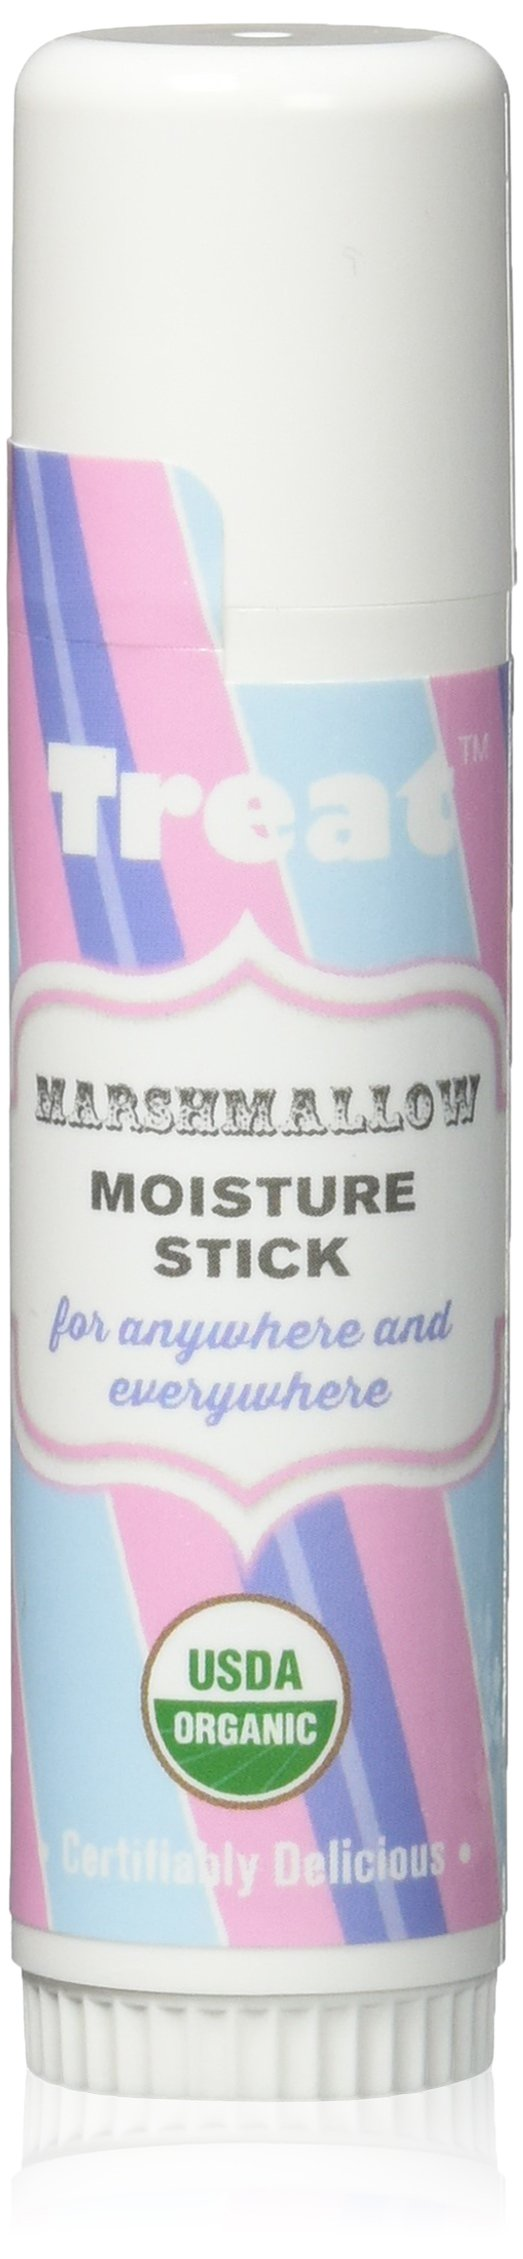 TREAT Jumbo Marshmallow Moisture Stick, Organic & Cruelty Free (.50 OZ)